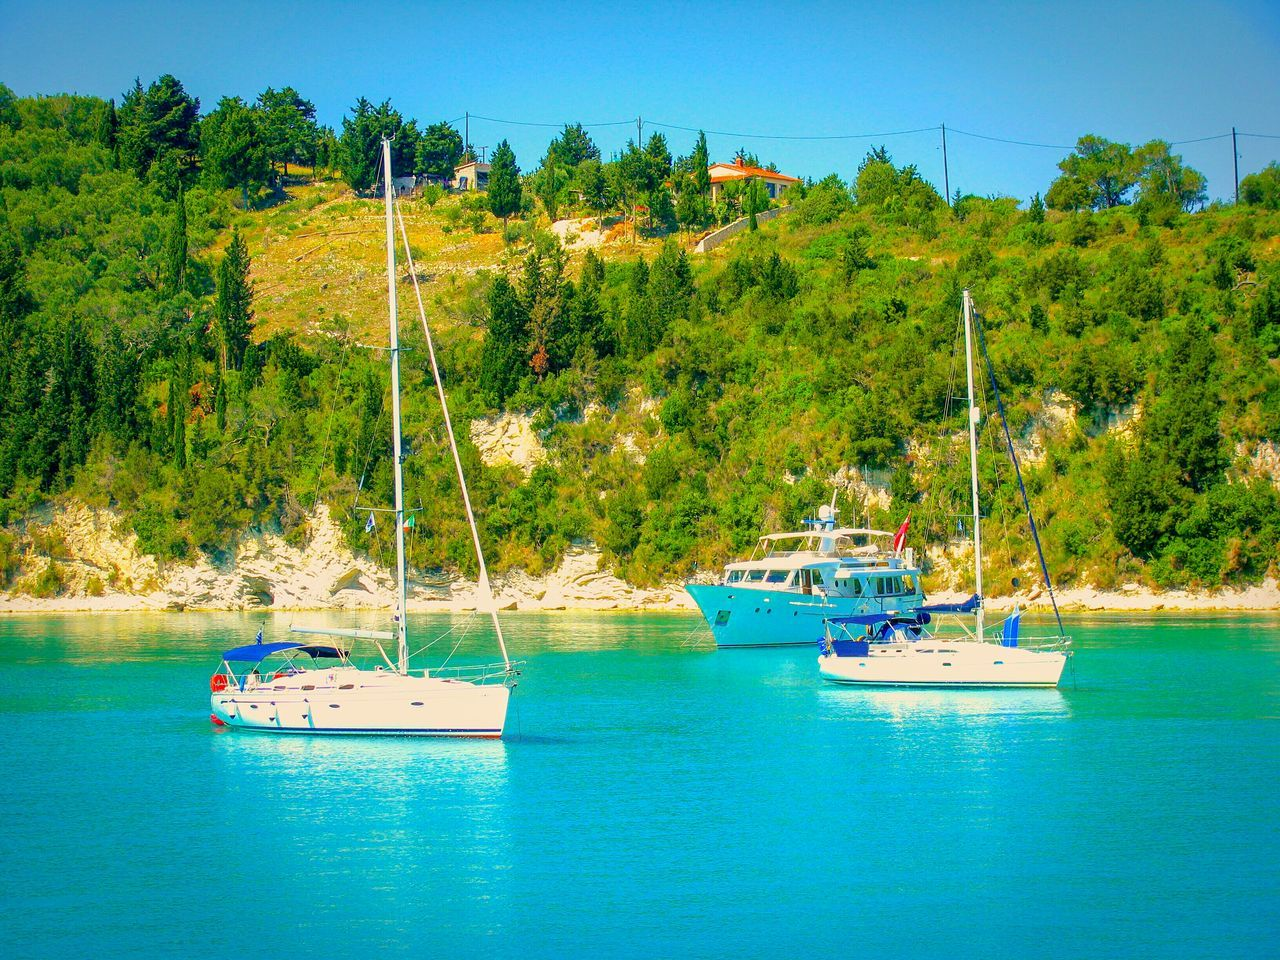 Boats Sailboats Sea Paxi Island Greek Islands No People Crystal Clear Waters Sea Boats And Sea Bay Summer Memories 🌄 Summer Views Summer Is Coming Shades Of Blue Seaside Seashore Blue Sea Trees And Water Tranquil Scene Tranquility Trees Trees And Sea Blue Wave The Essence Of Summer